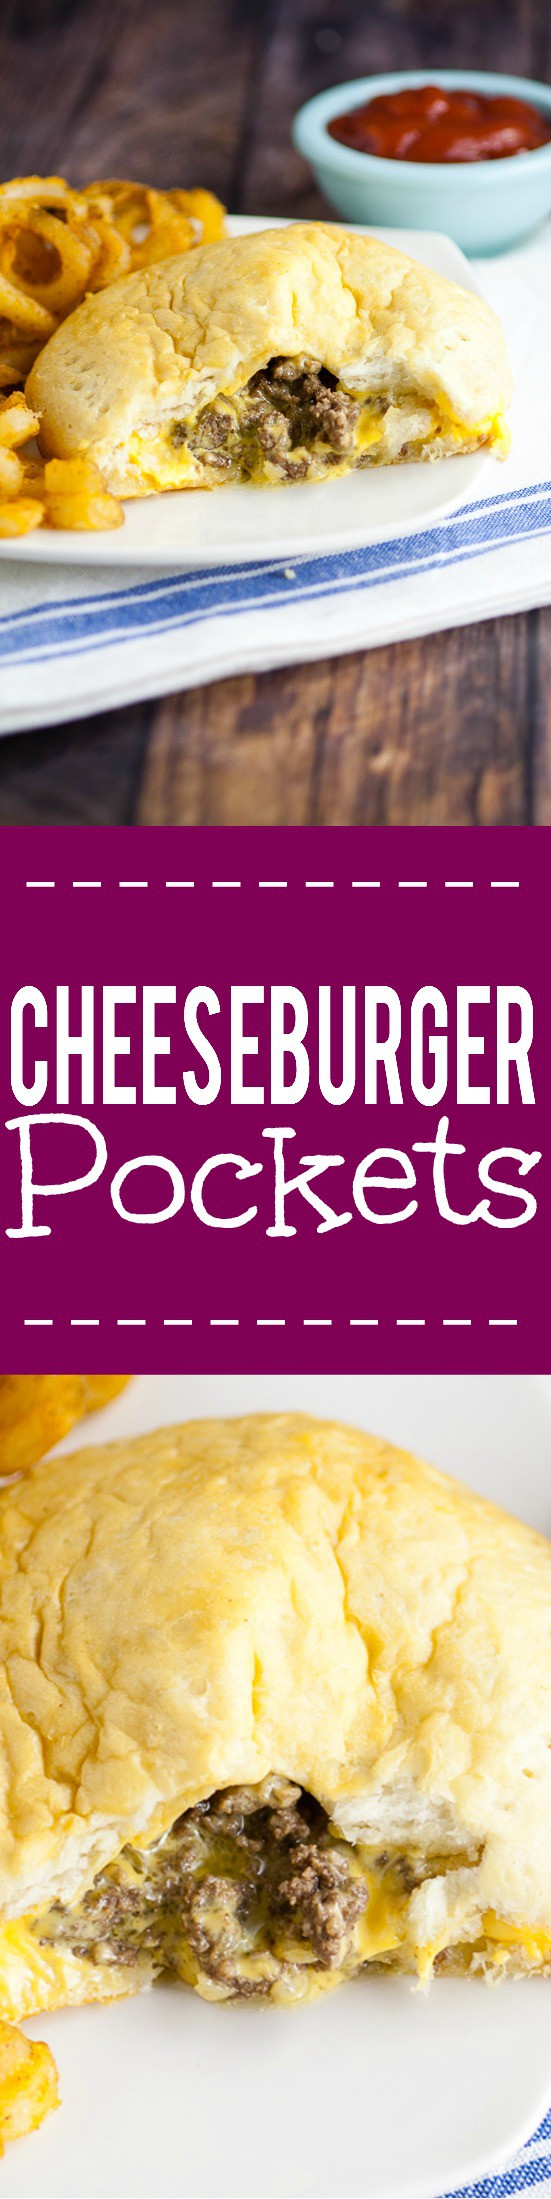 Cheesburger Pockets Recipe -Made in just 30 minutes with 5 ingredients, this cheesy Cheeseburger Pockets recipe is the ultimate yummy, quick and easy family dinner recipe. It's even great for on-the-go! Love this! Kind of like a homemade hot pocket